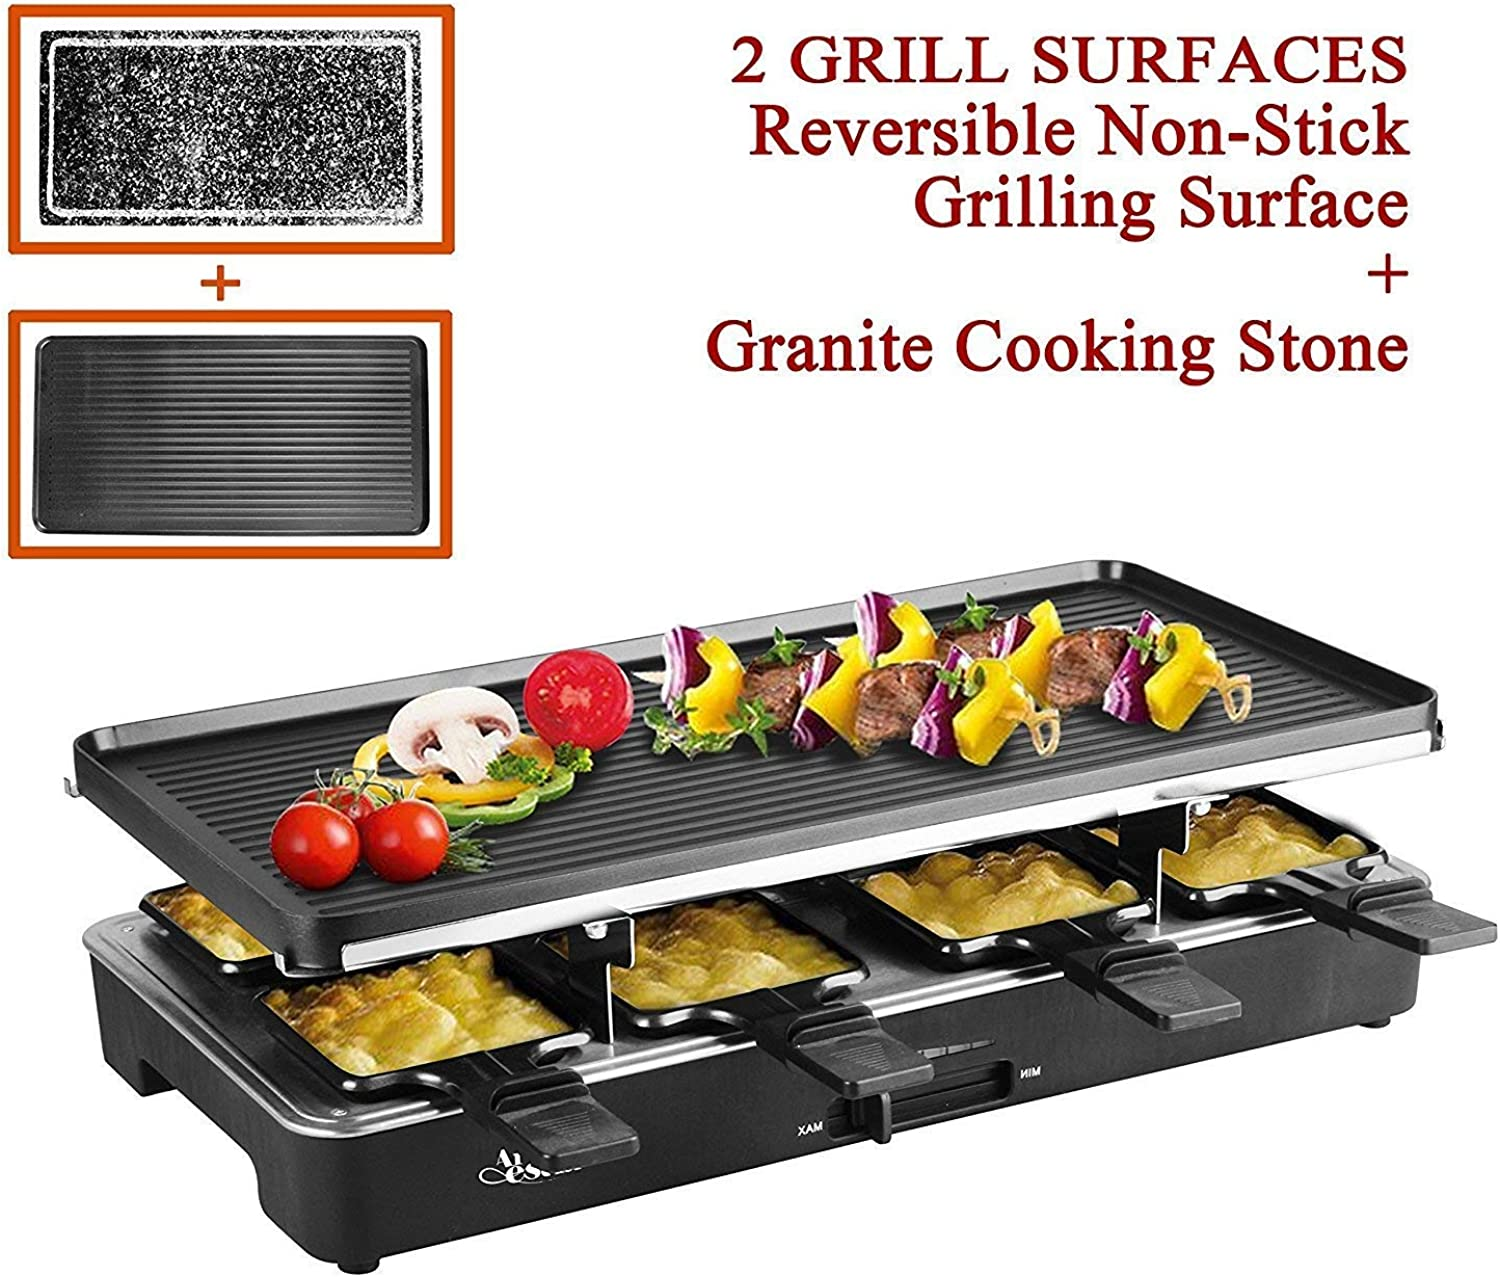 Artestia Electric Raclette Grill with Two Full Size Top Plates (Non-Stick Reversible Aluminum and High Density Granite Stone), Serve the whole family (Full Size Stone and Aluminum Plates Raclette)